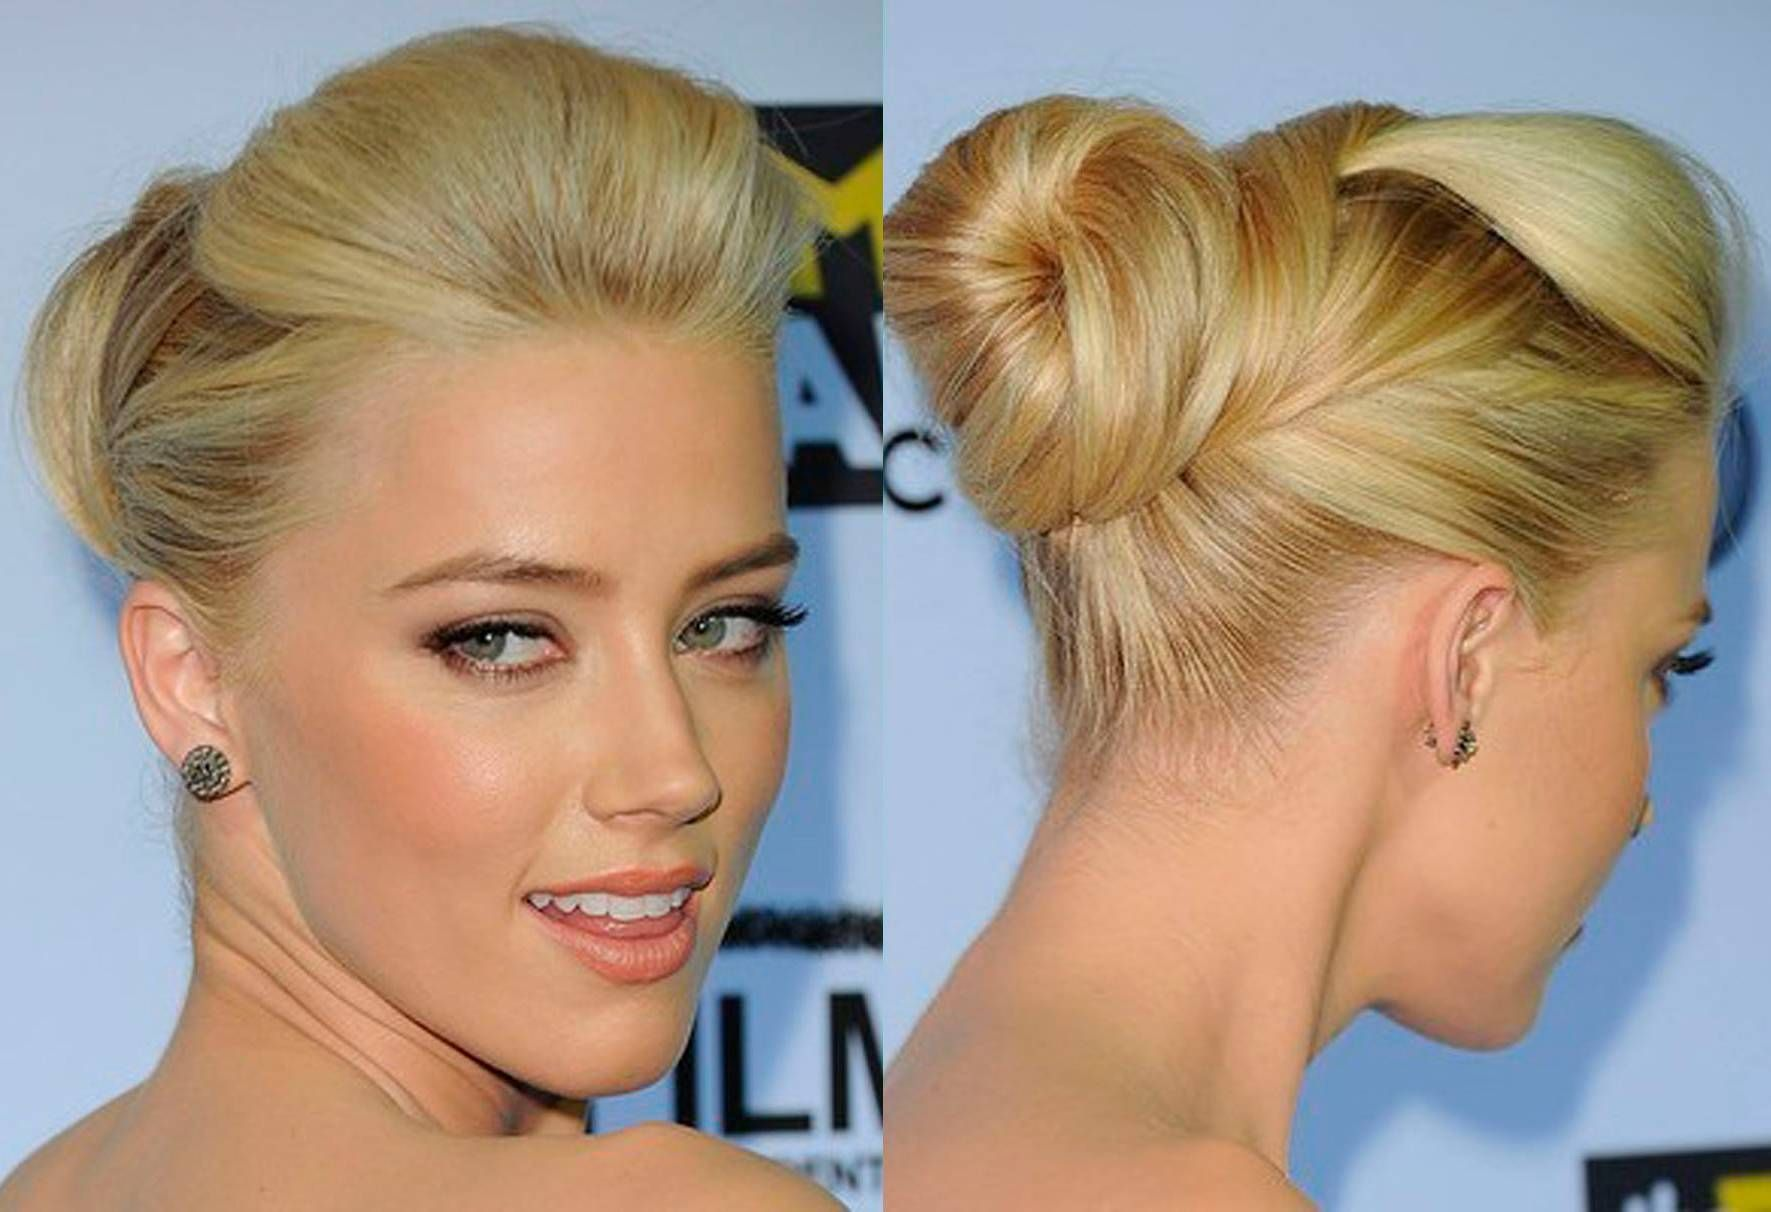 Bun Hairstyles To Do at Home Hairstyles Pinterest